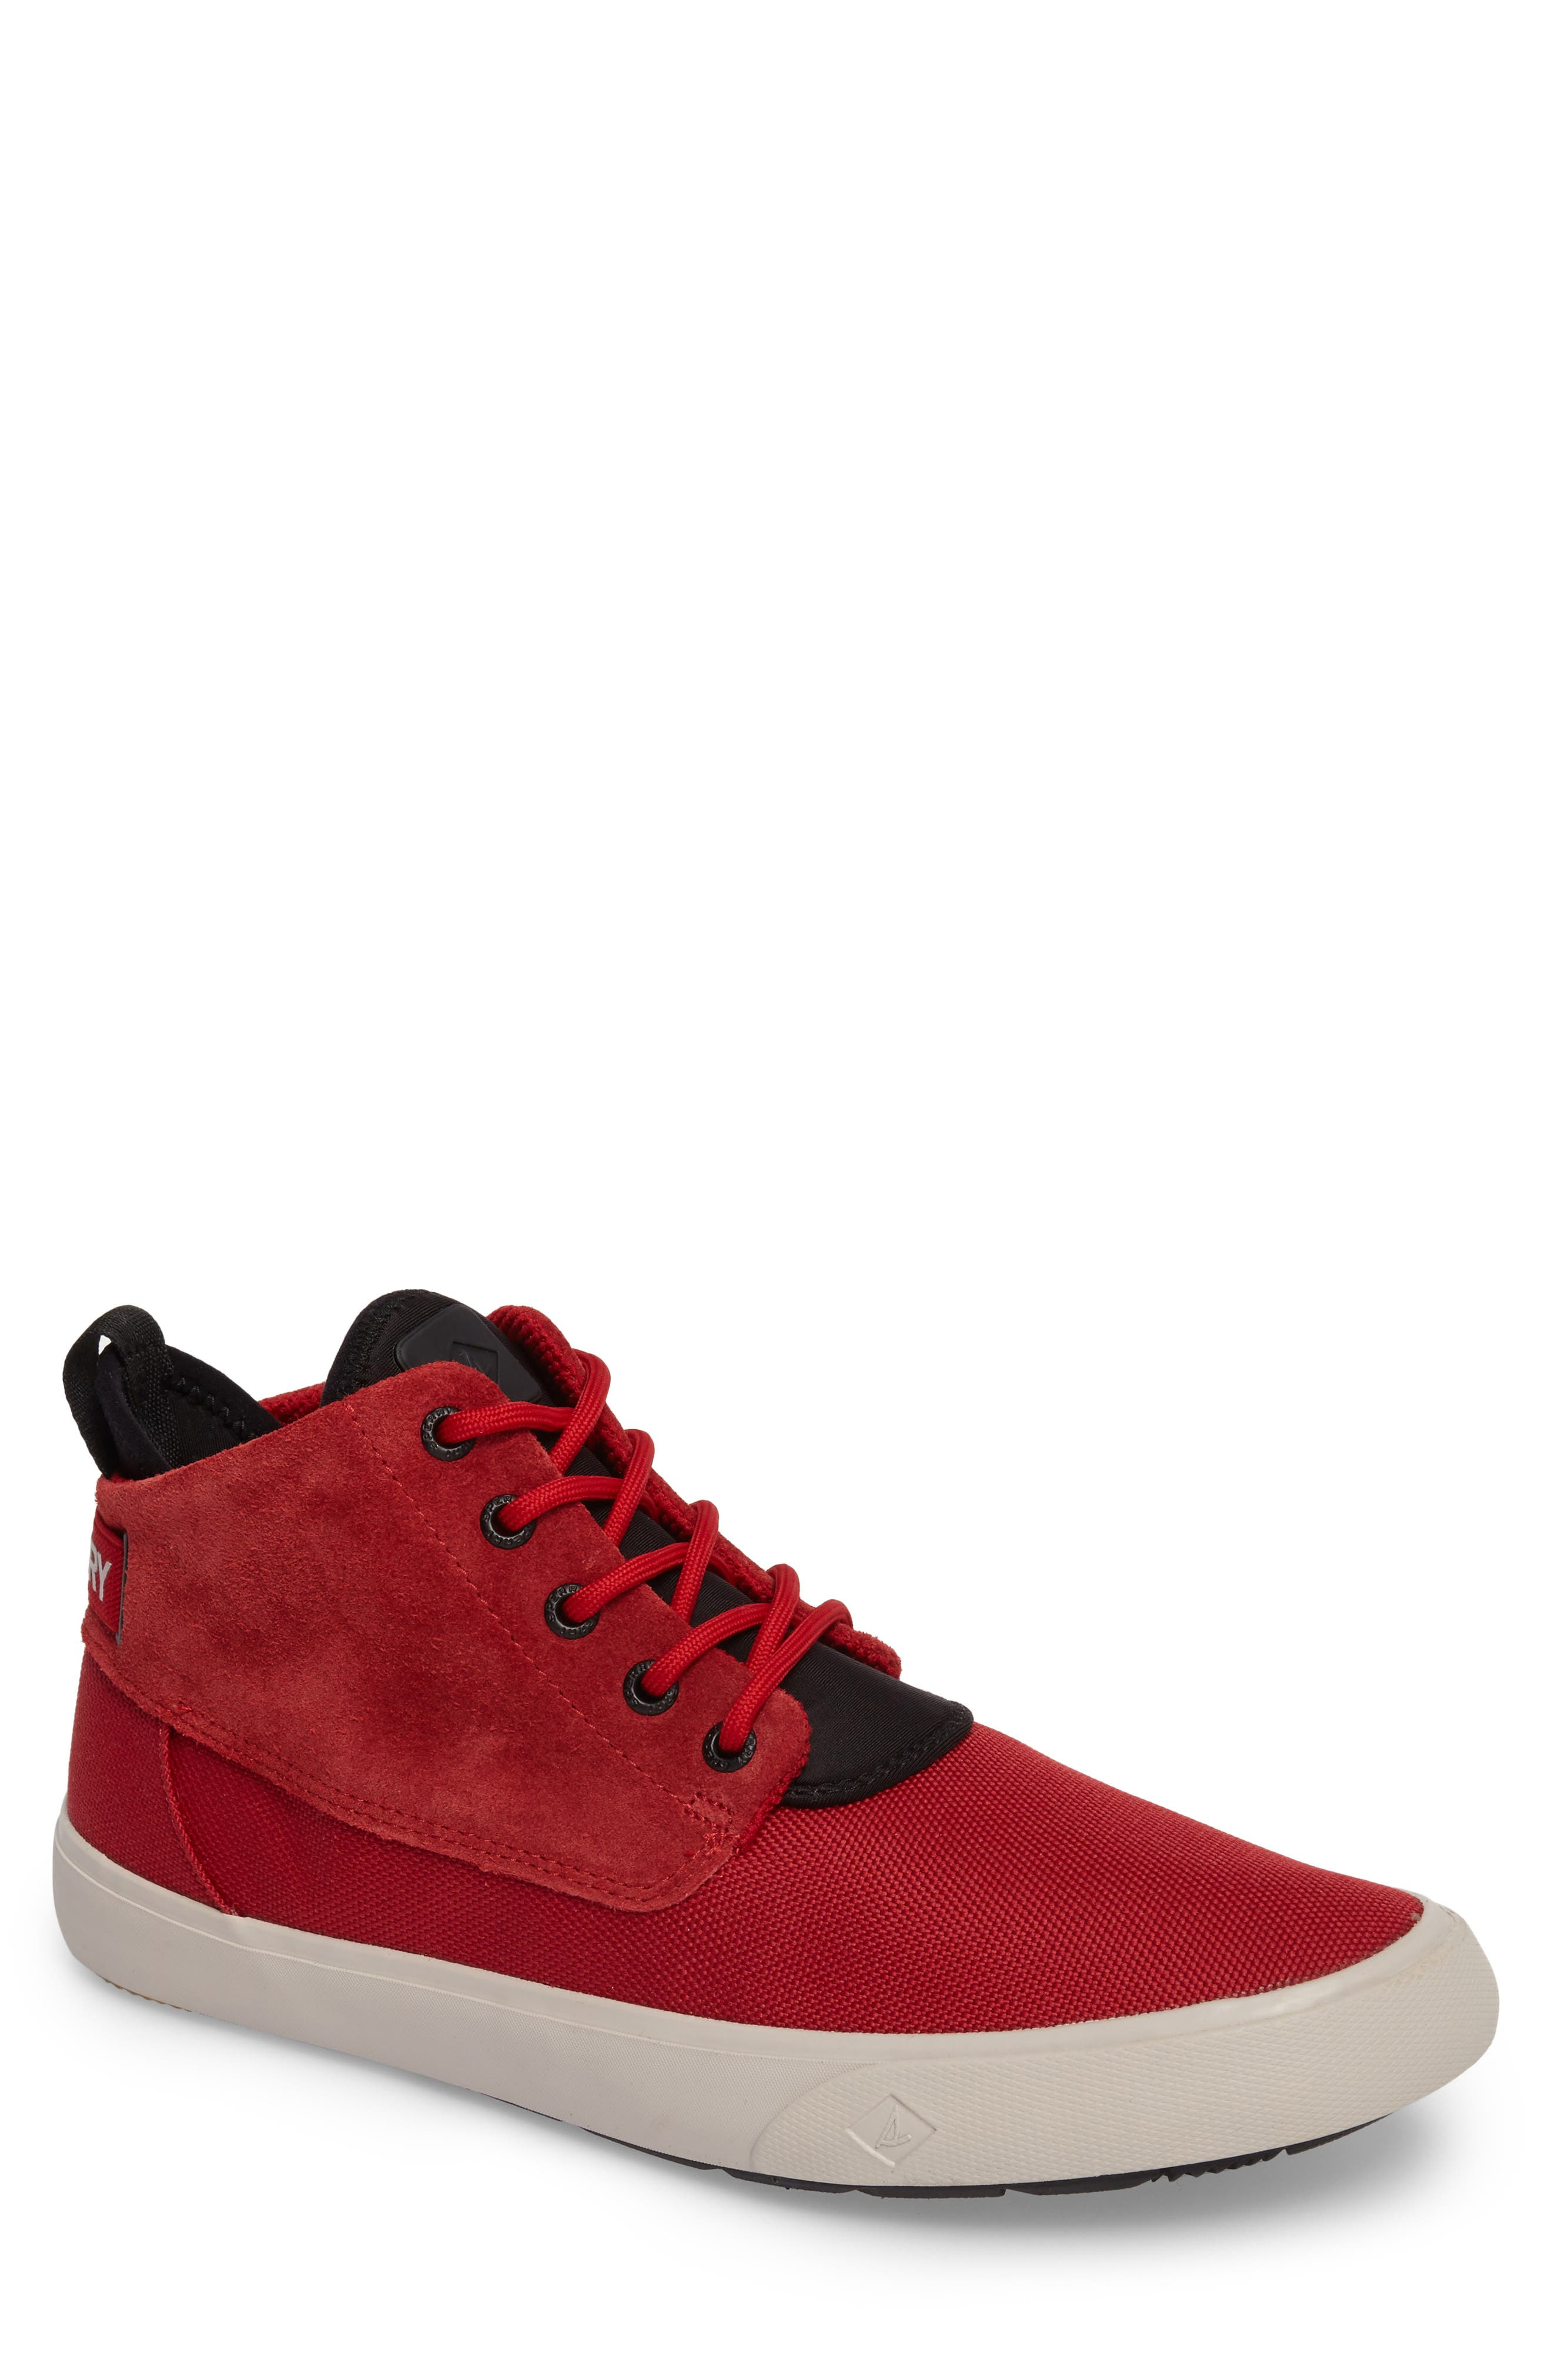 Cutwater Sneaker,                             Main thumbnail 1, color,                             Red